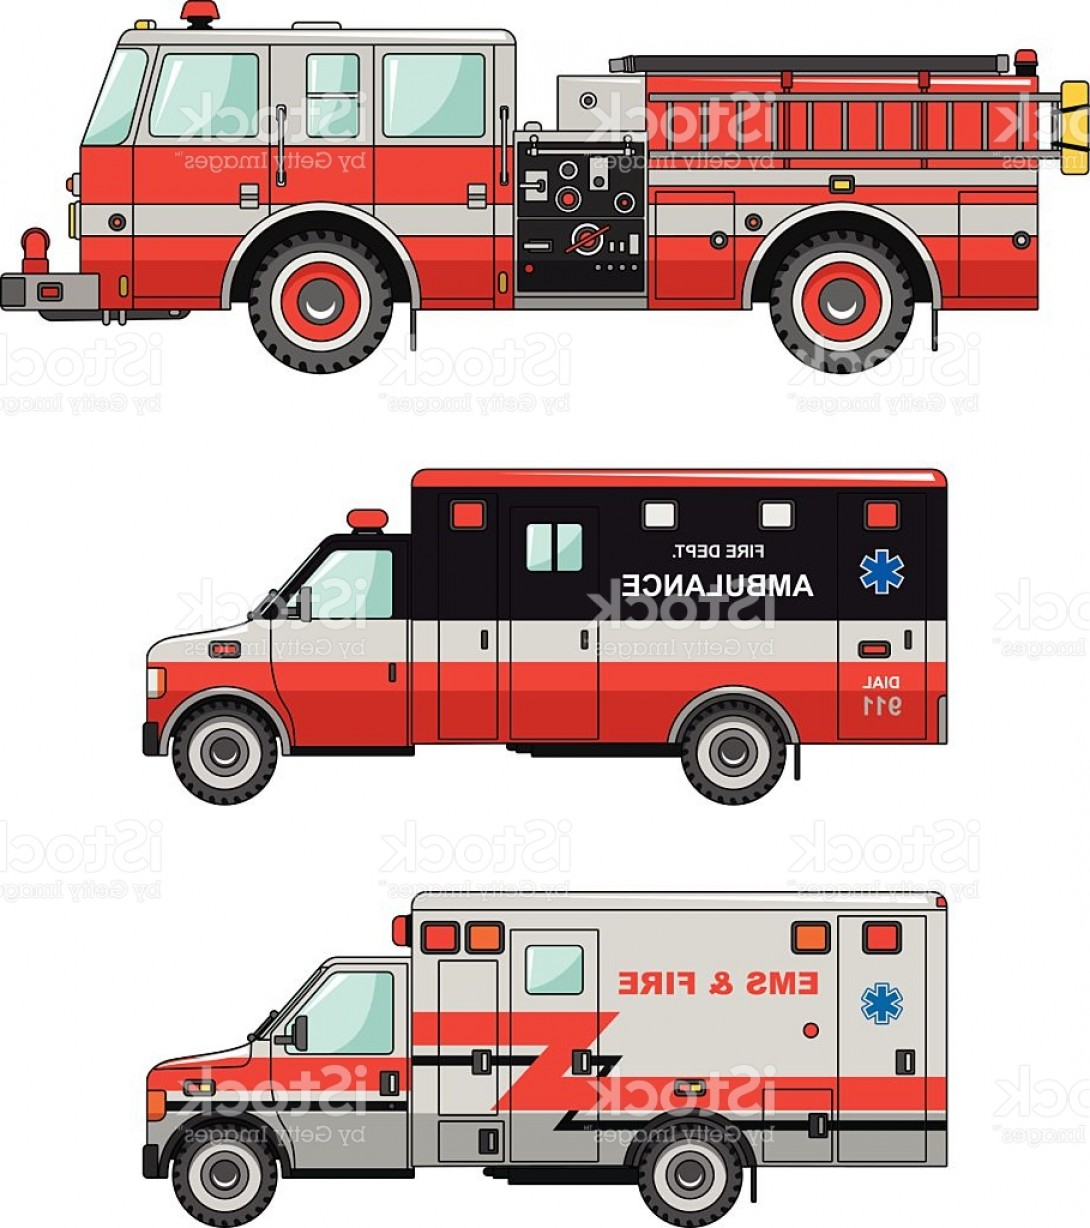 Fire Truck Vector Art: Fire Truck And Ambulance Cars Isolated On White Background Gm